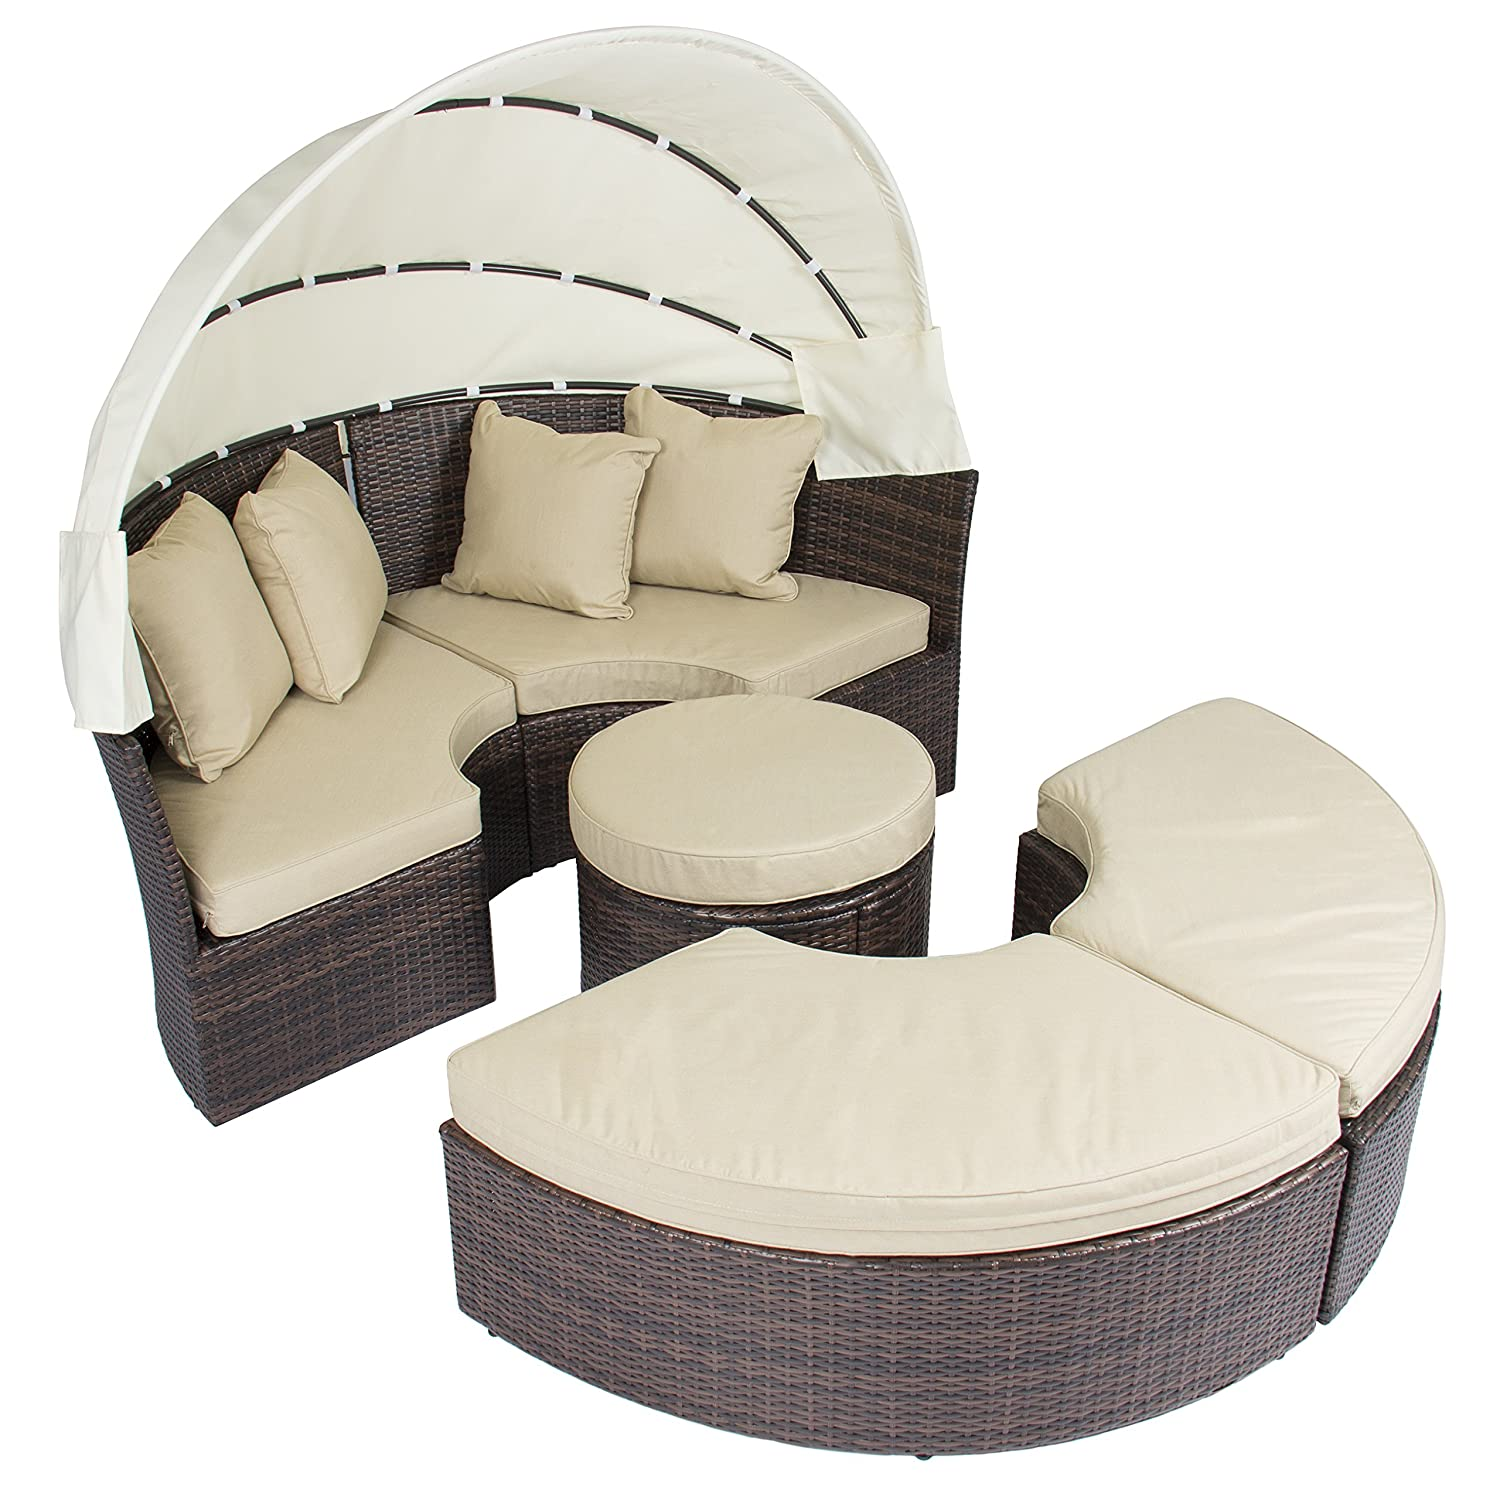 Perfect Amazon.com : Best Choice Products Retractable Canopy Wicker Daybed For  Outdoor   Beige : Garden U0026 Outdoor